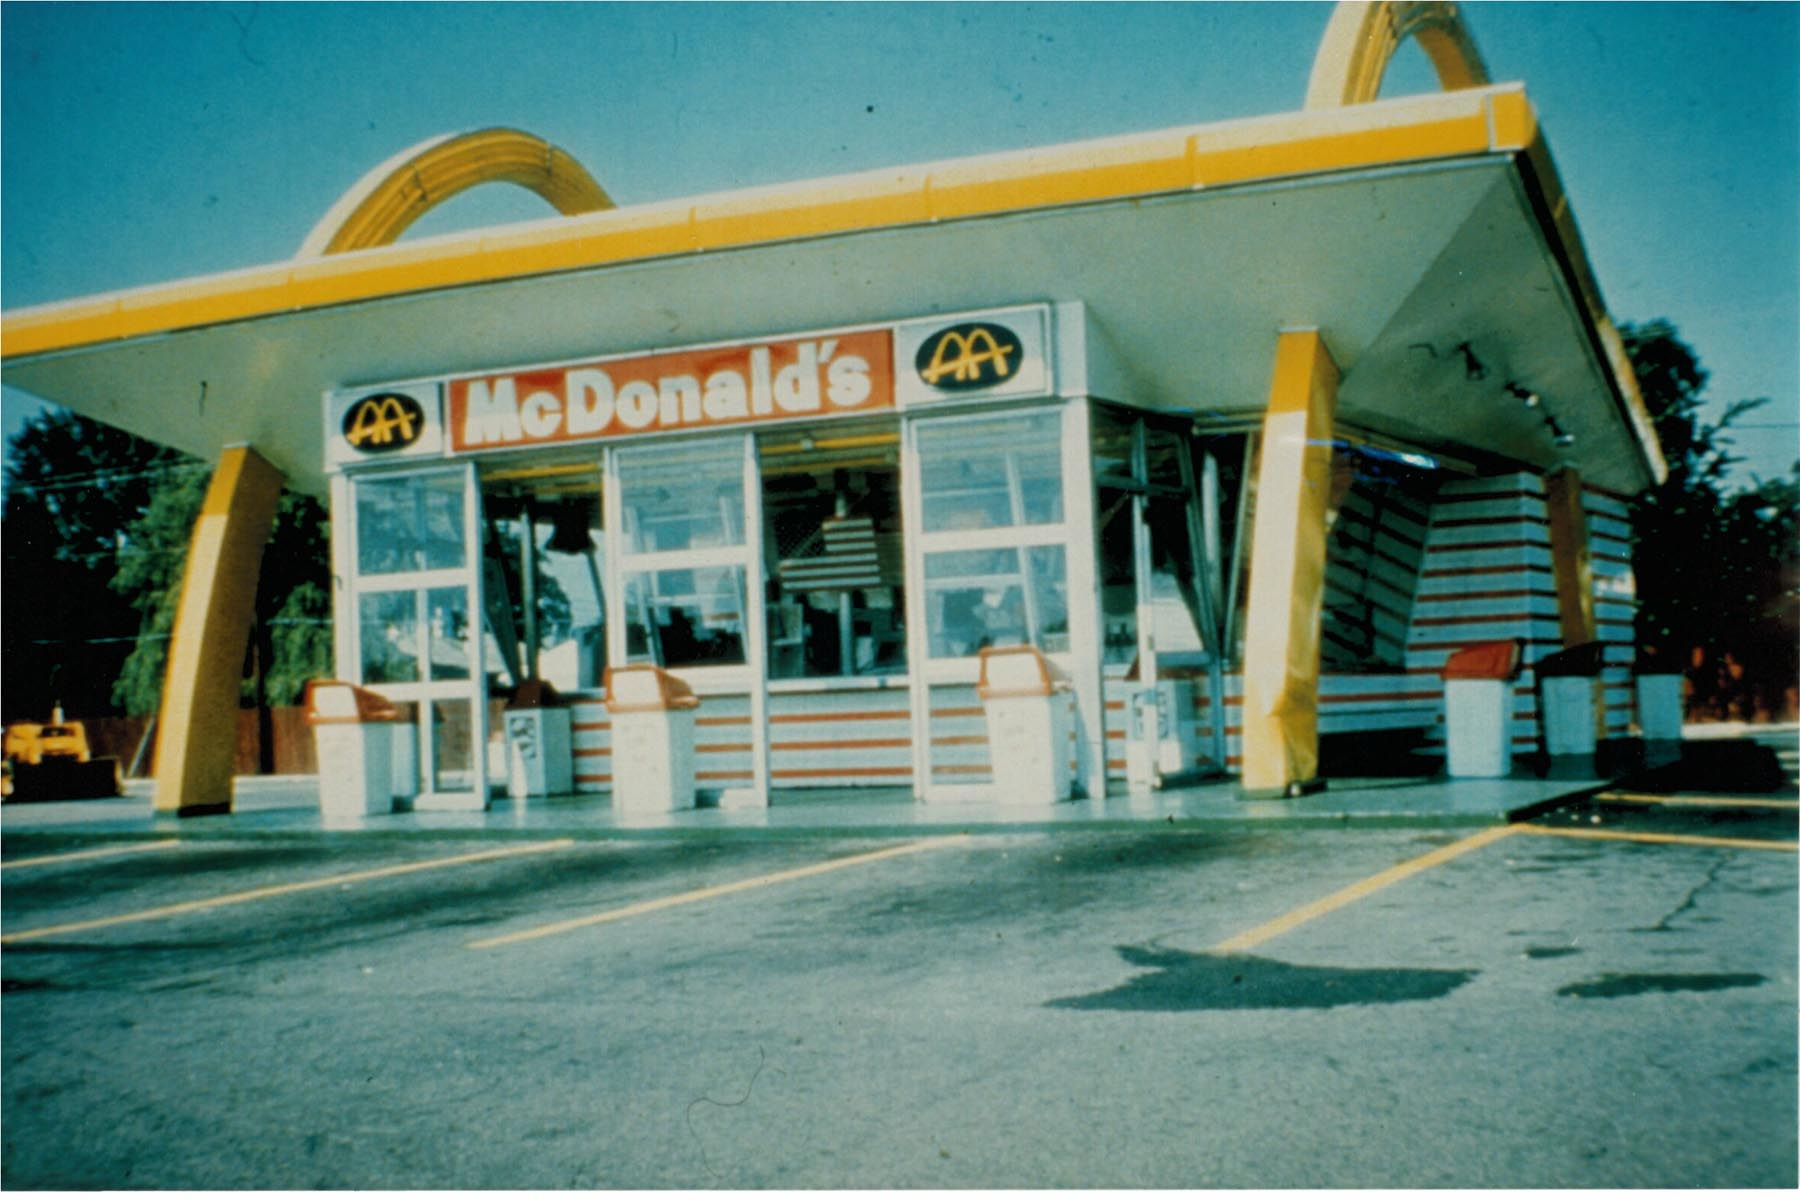 1967 McDonald's Canada, Richmond BC (Photo Credit: McDonald's Canada)